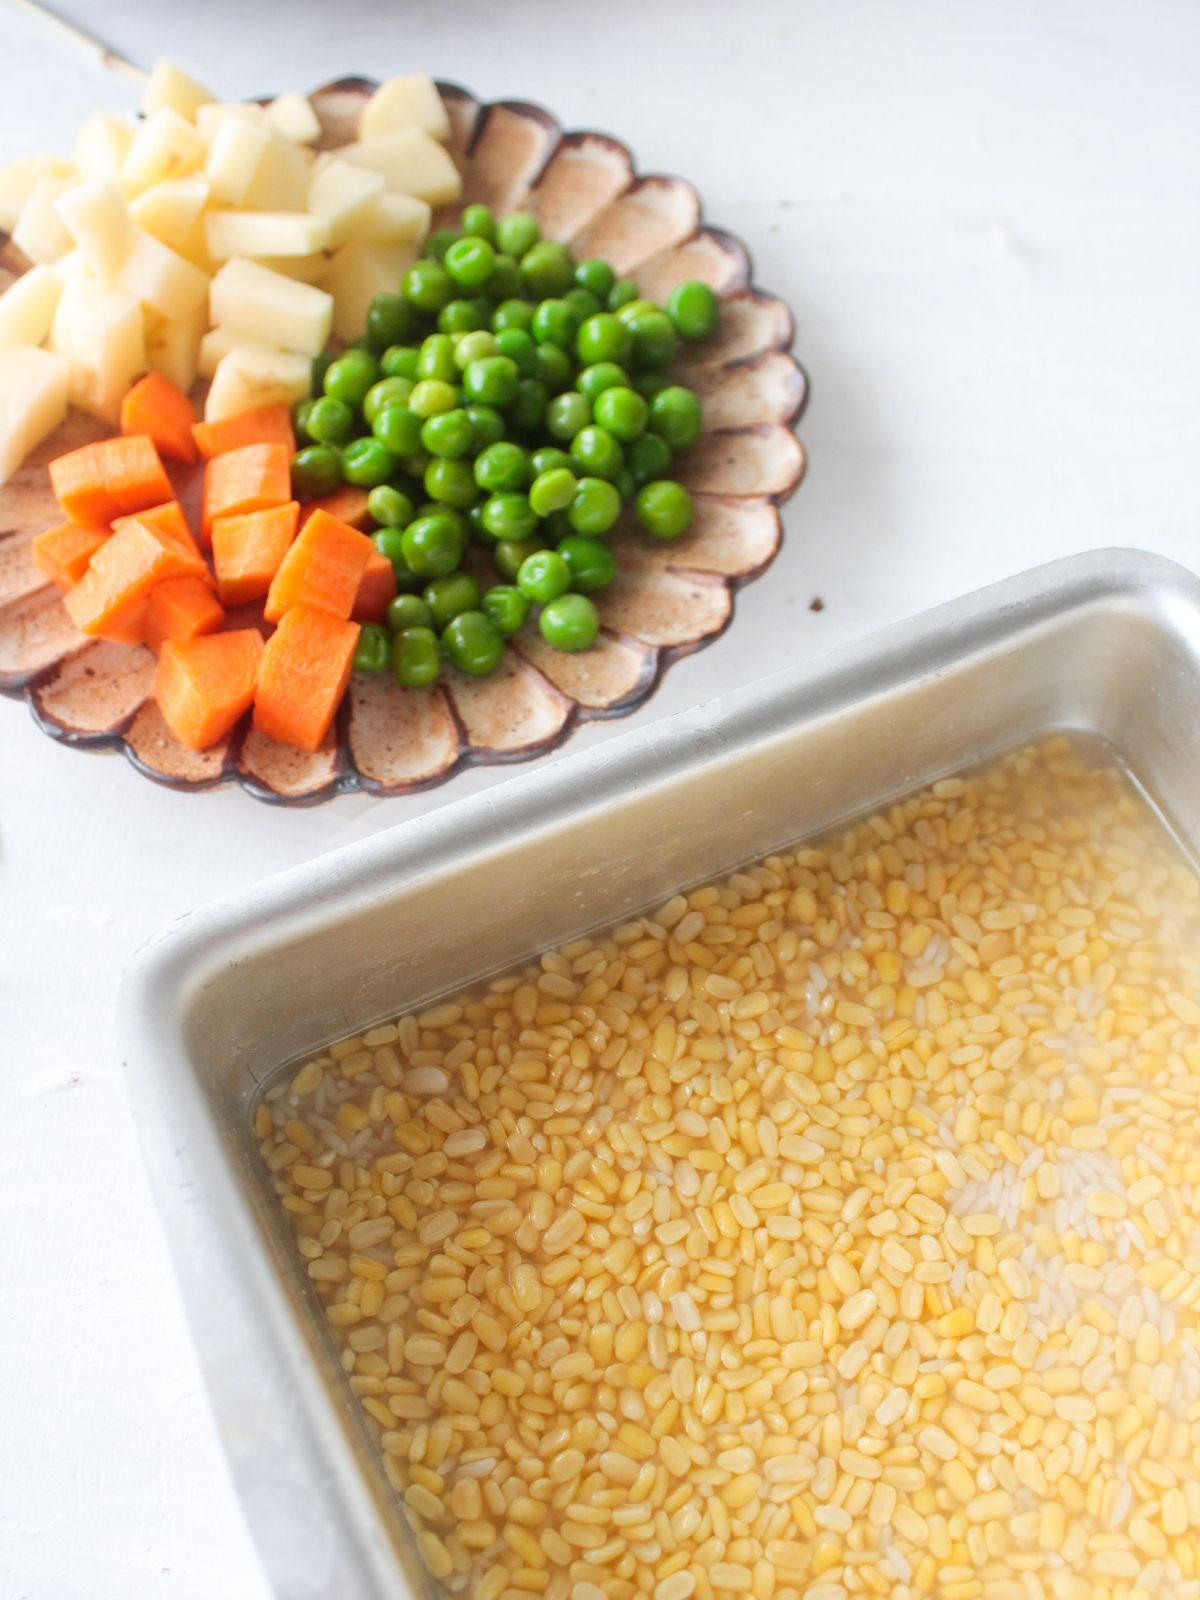 Ingredients for the khichdi  with rice and lentils in metal pan and vegetables on brown bowl